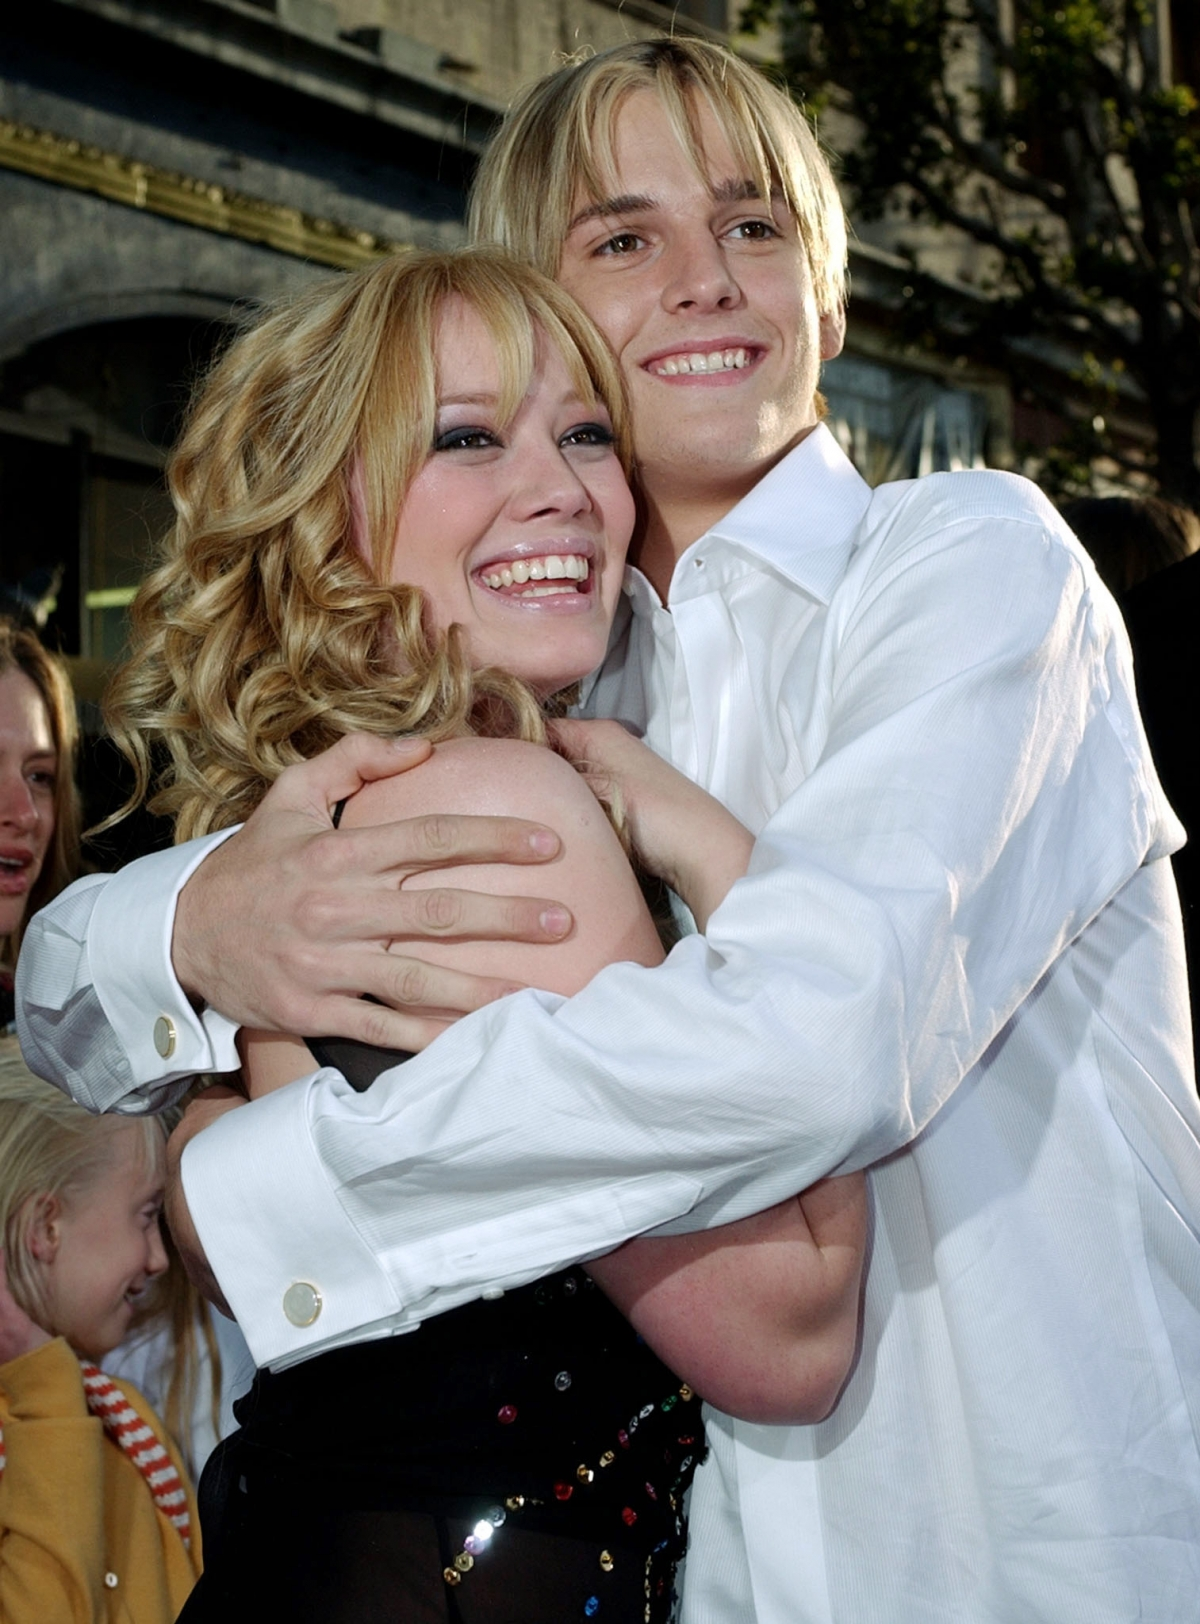 American singer Aaron Carter is desperate to reconcile with former girlfriend Hilary Duff.